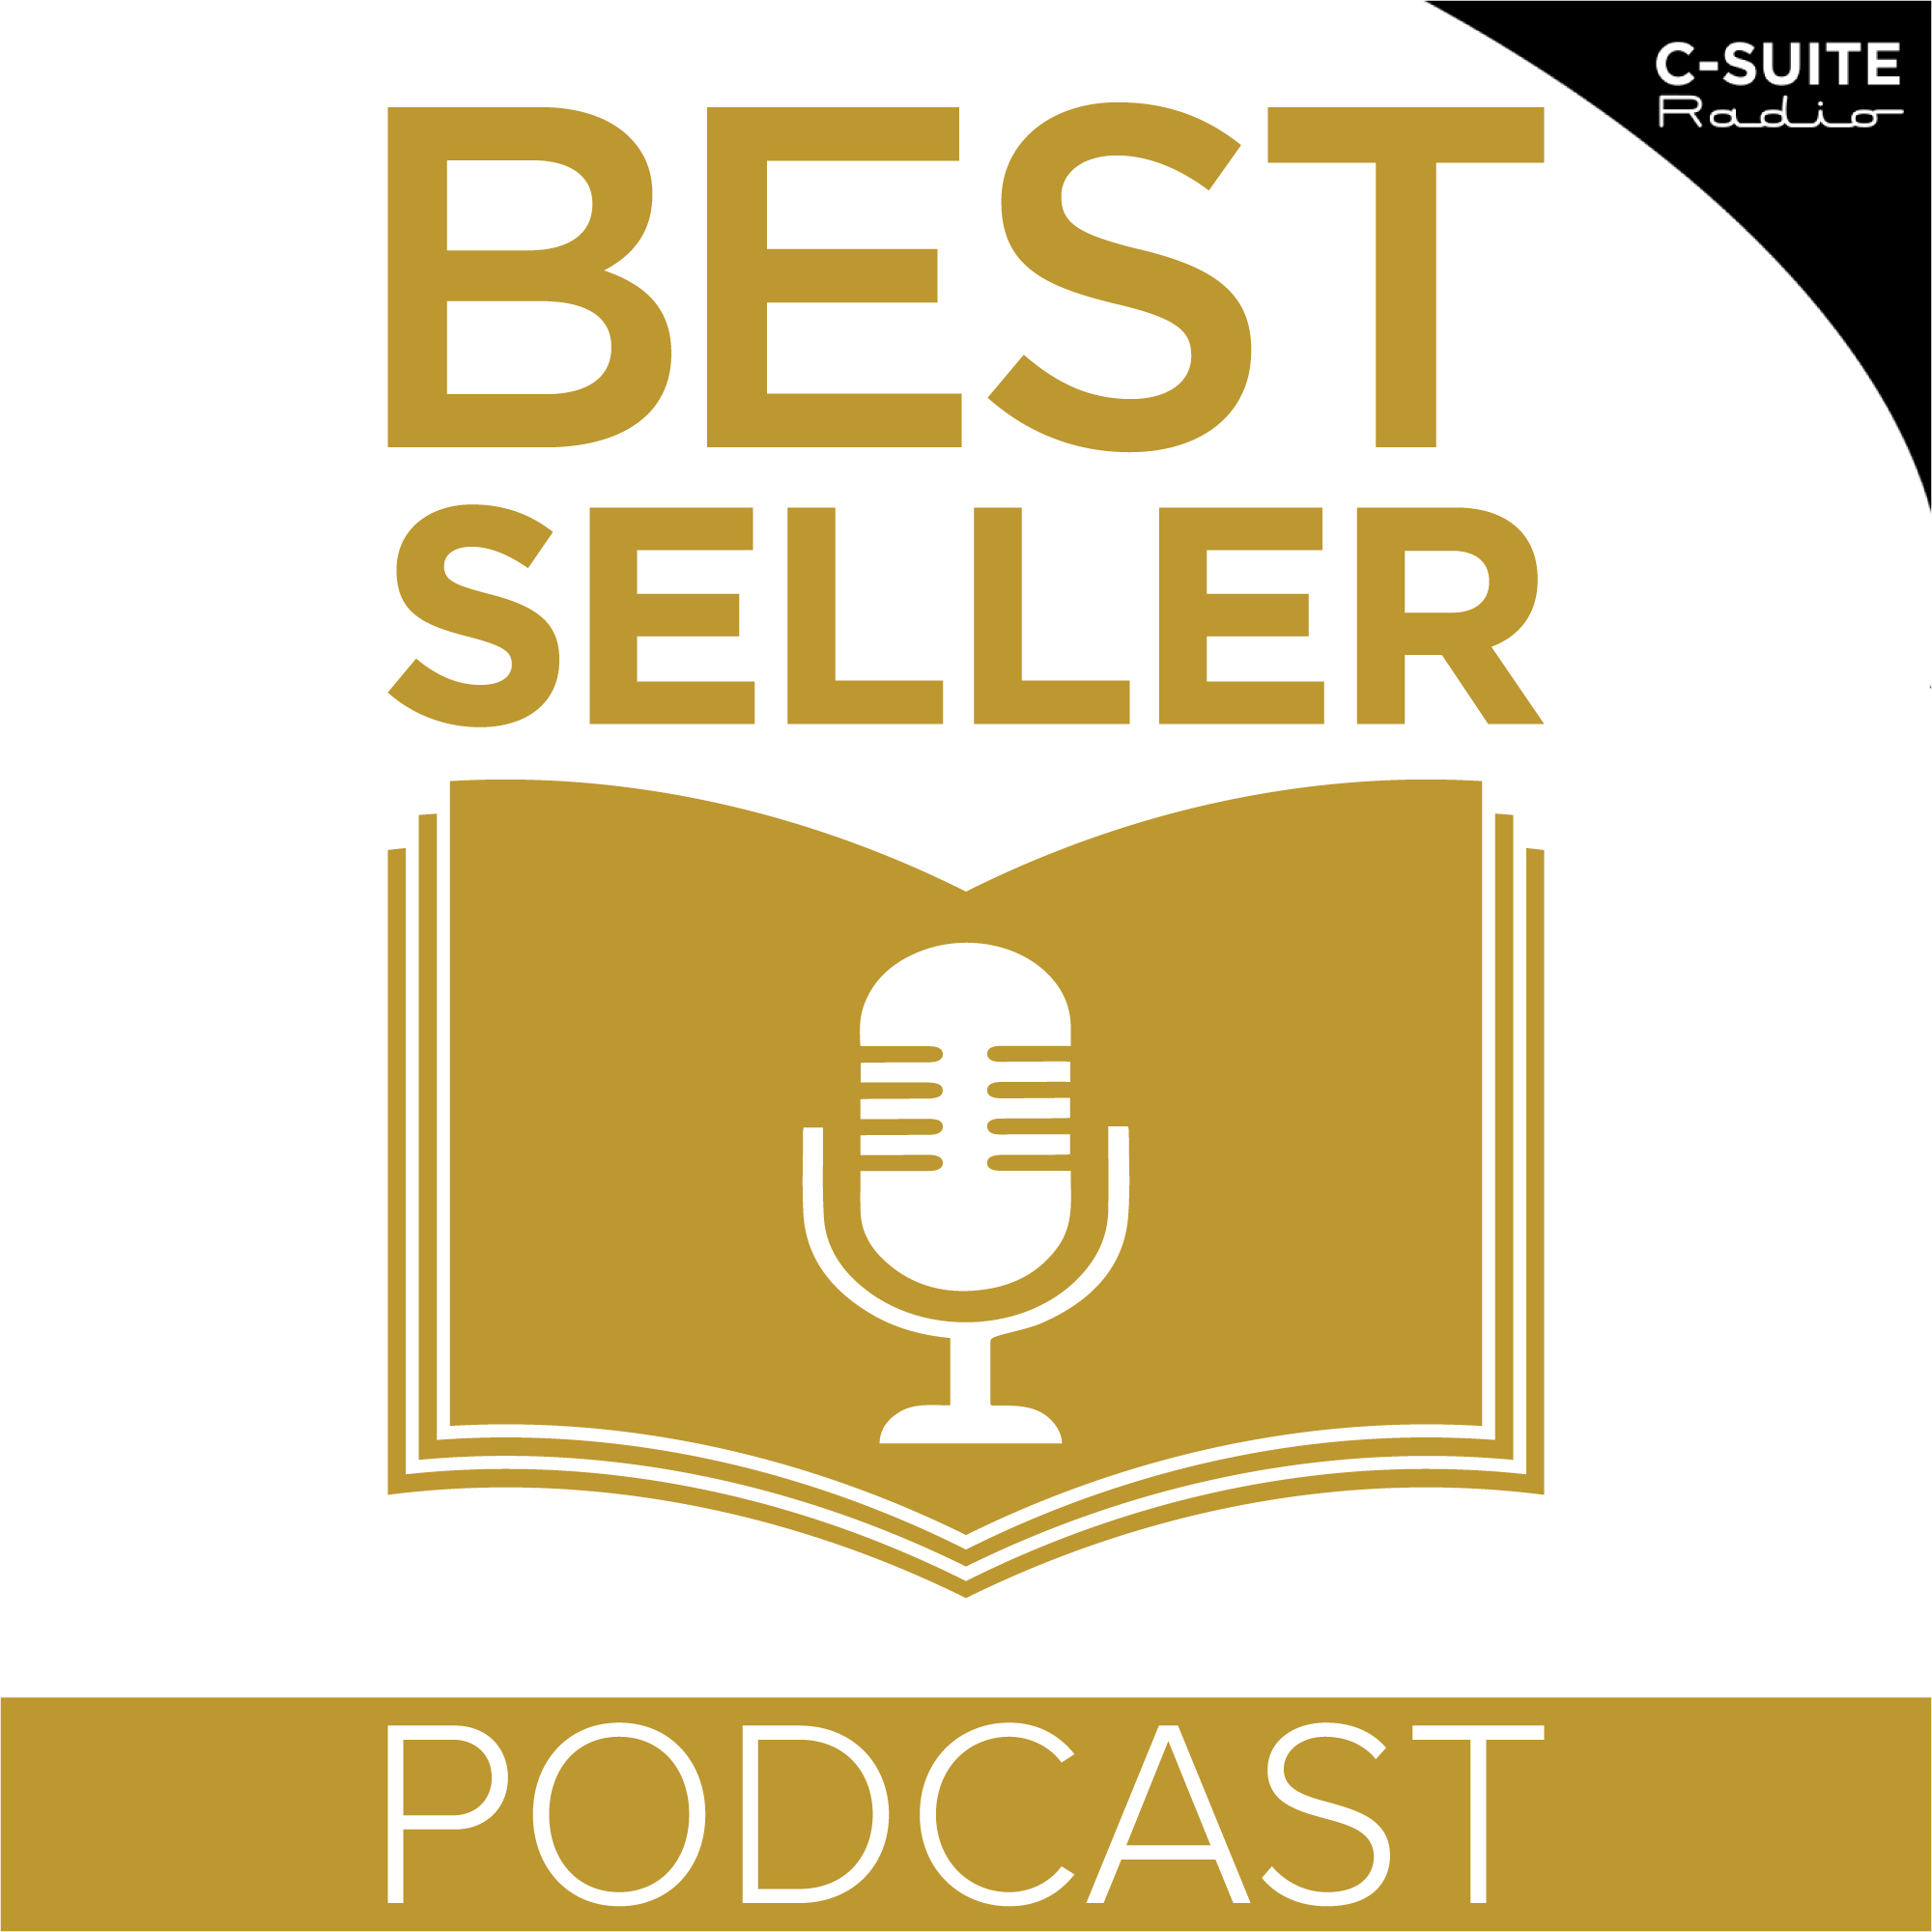 Best Seller Podcast